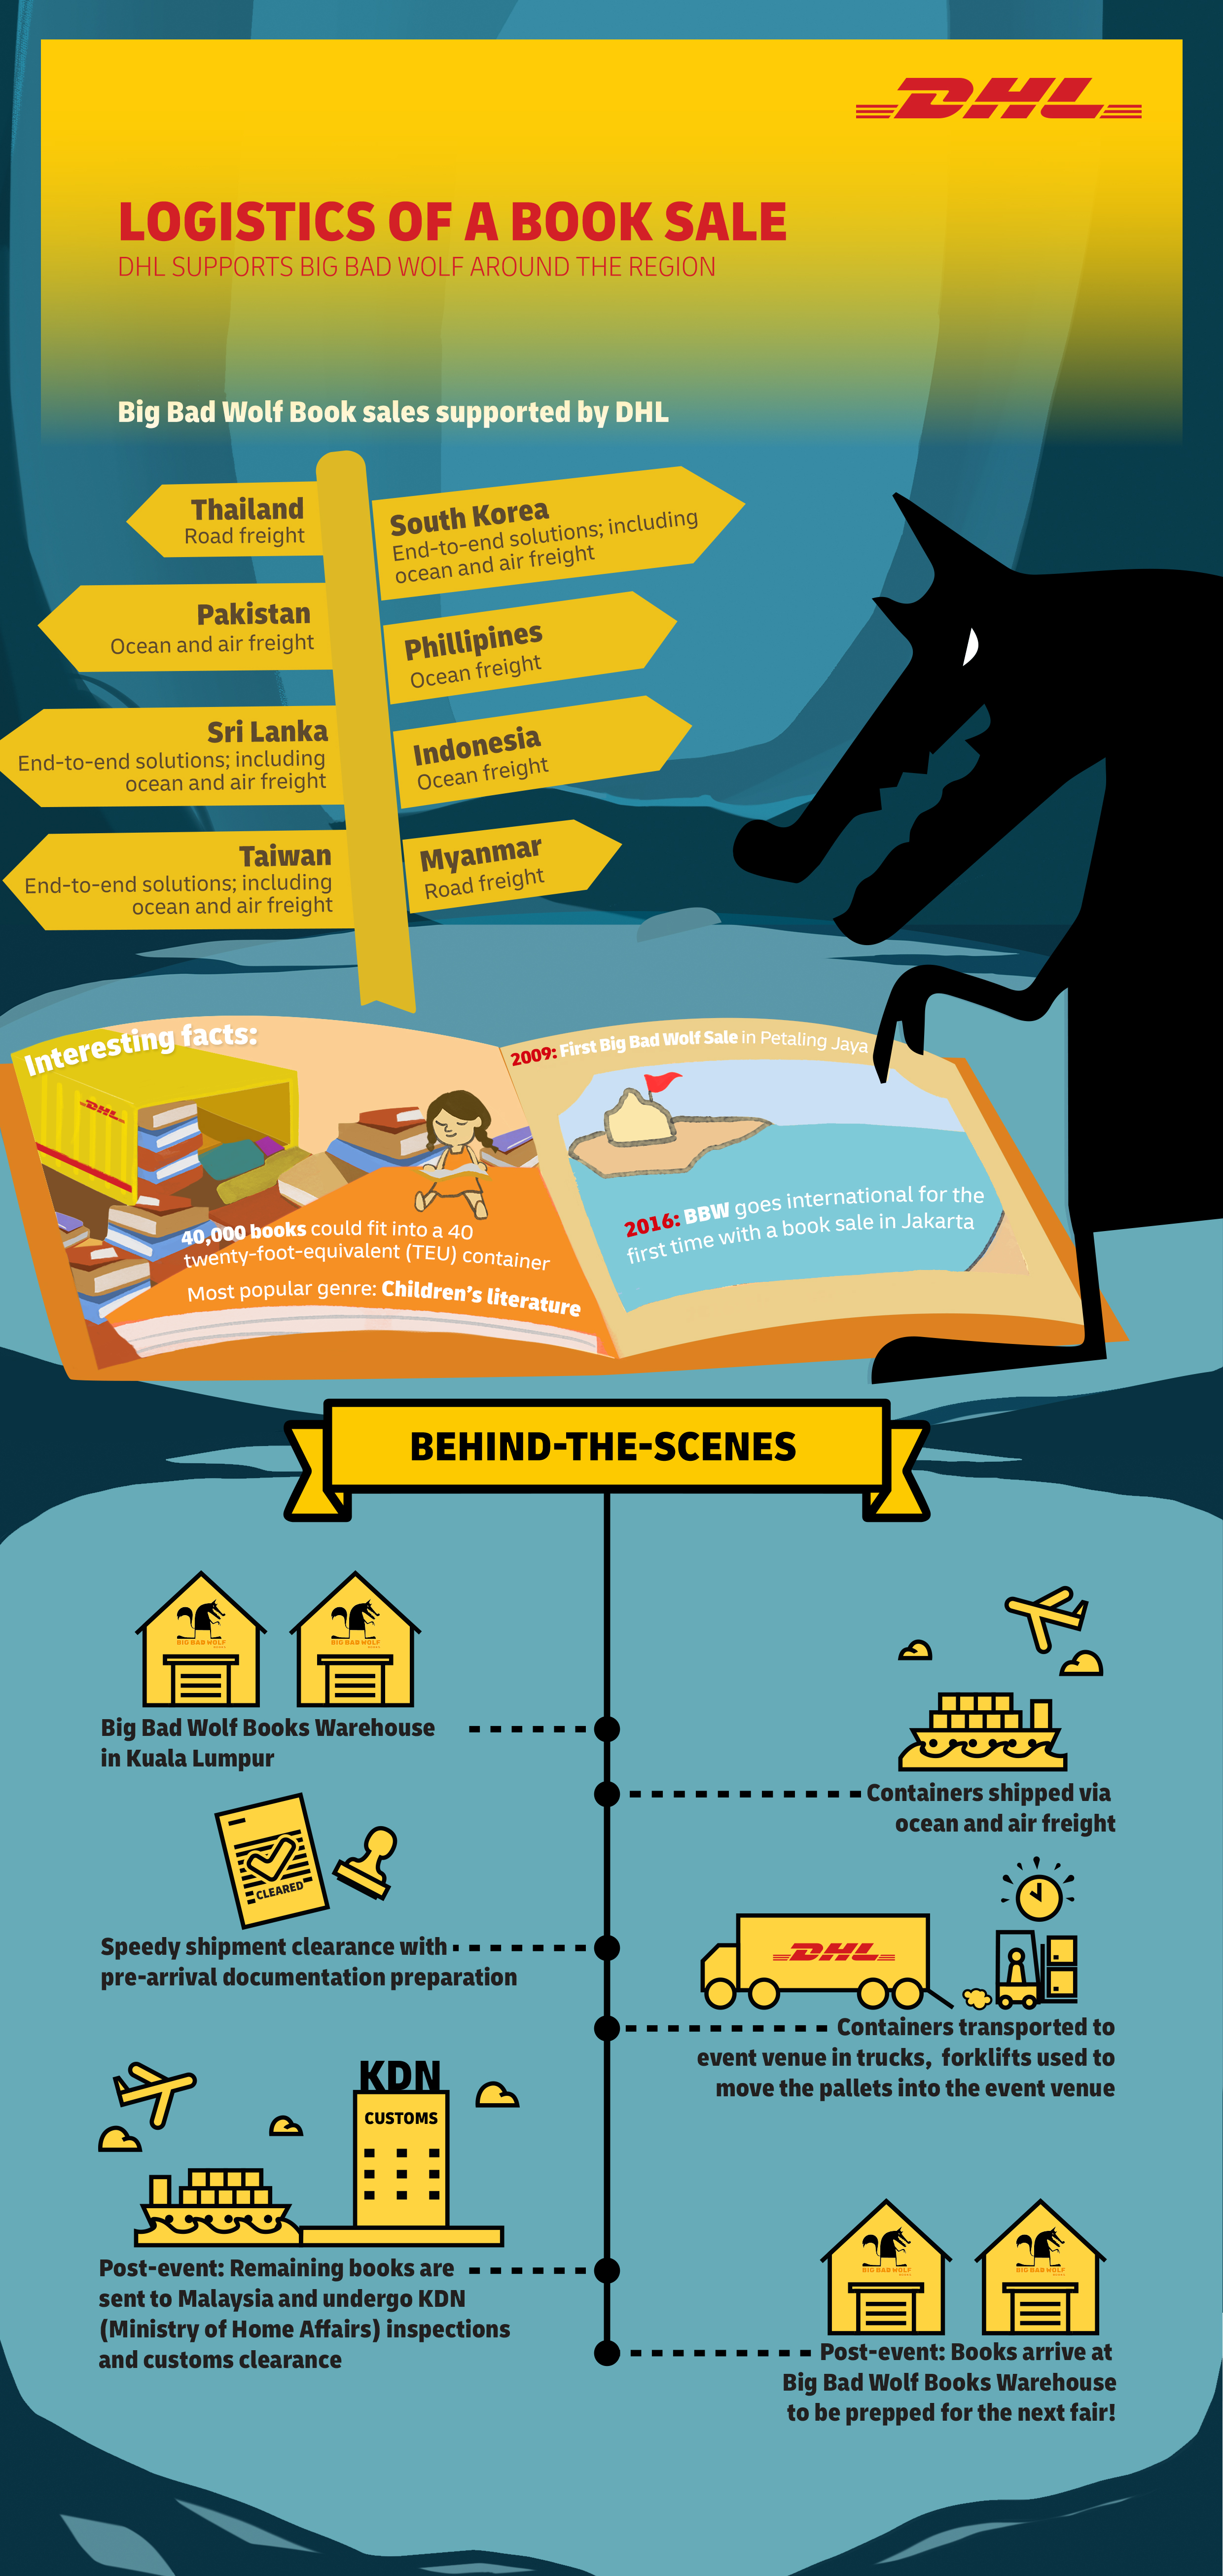 DHL Global Forwarding Partners Big Bad Wolf Books to Co-author Asia's Literary Resurgence with Massive Book Sales